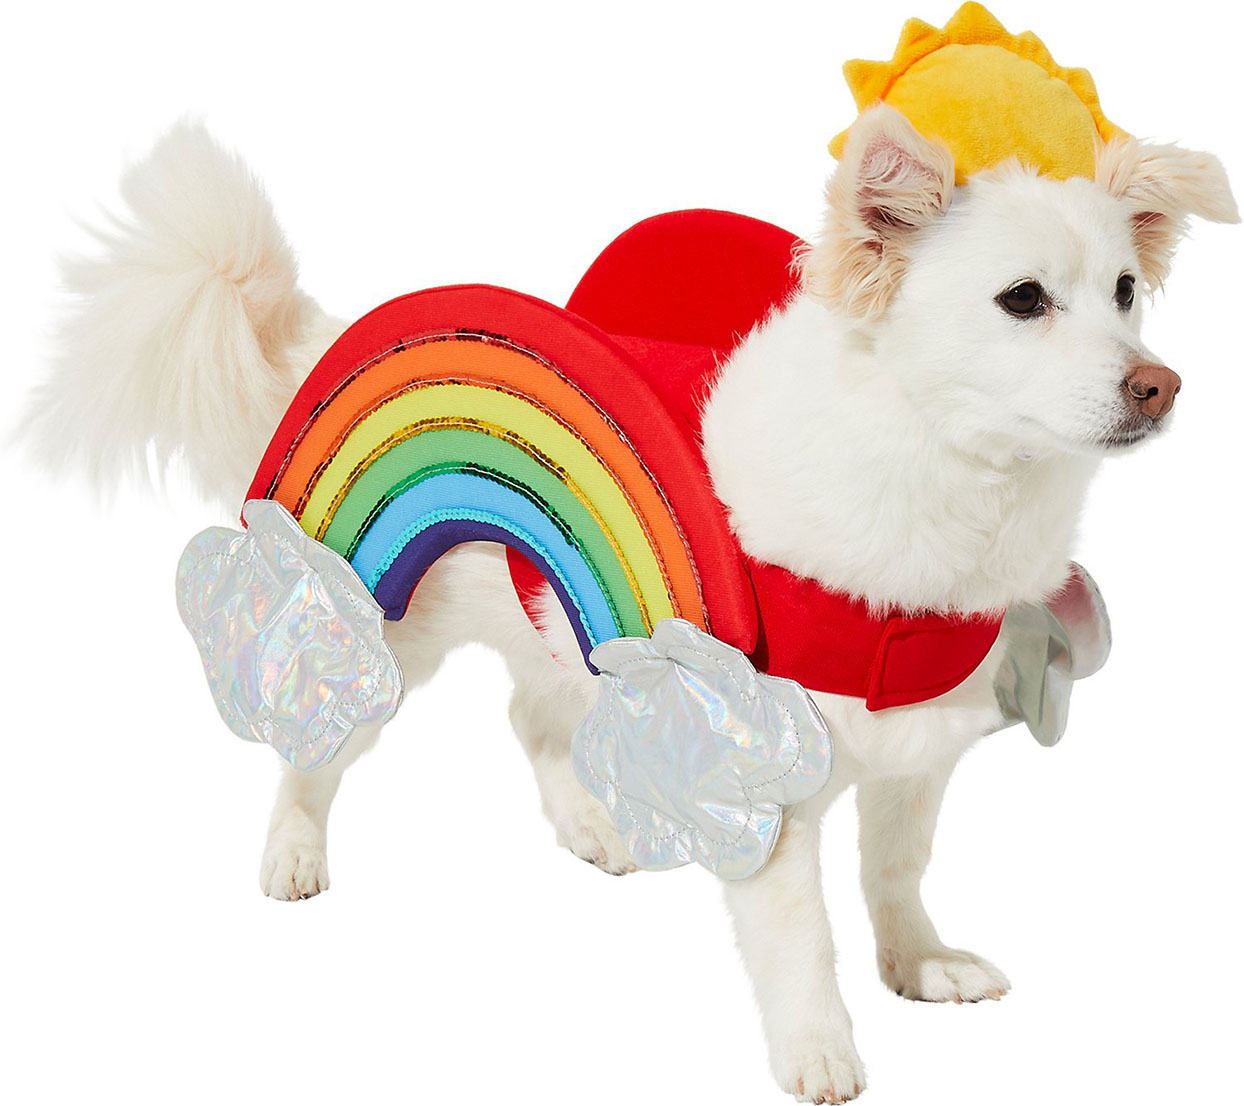 White dog wearing a rainbow Halloween costume with a sun hat